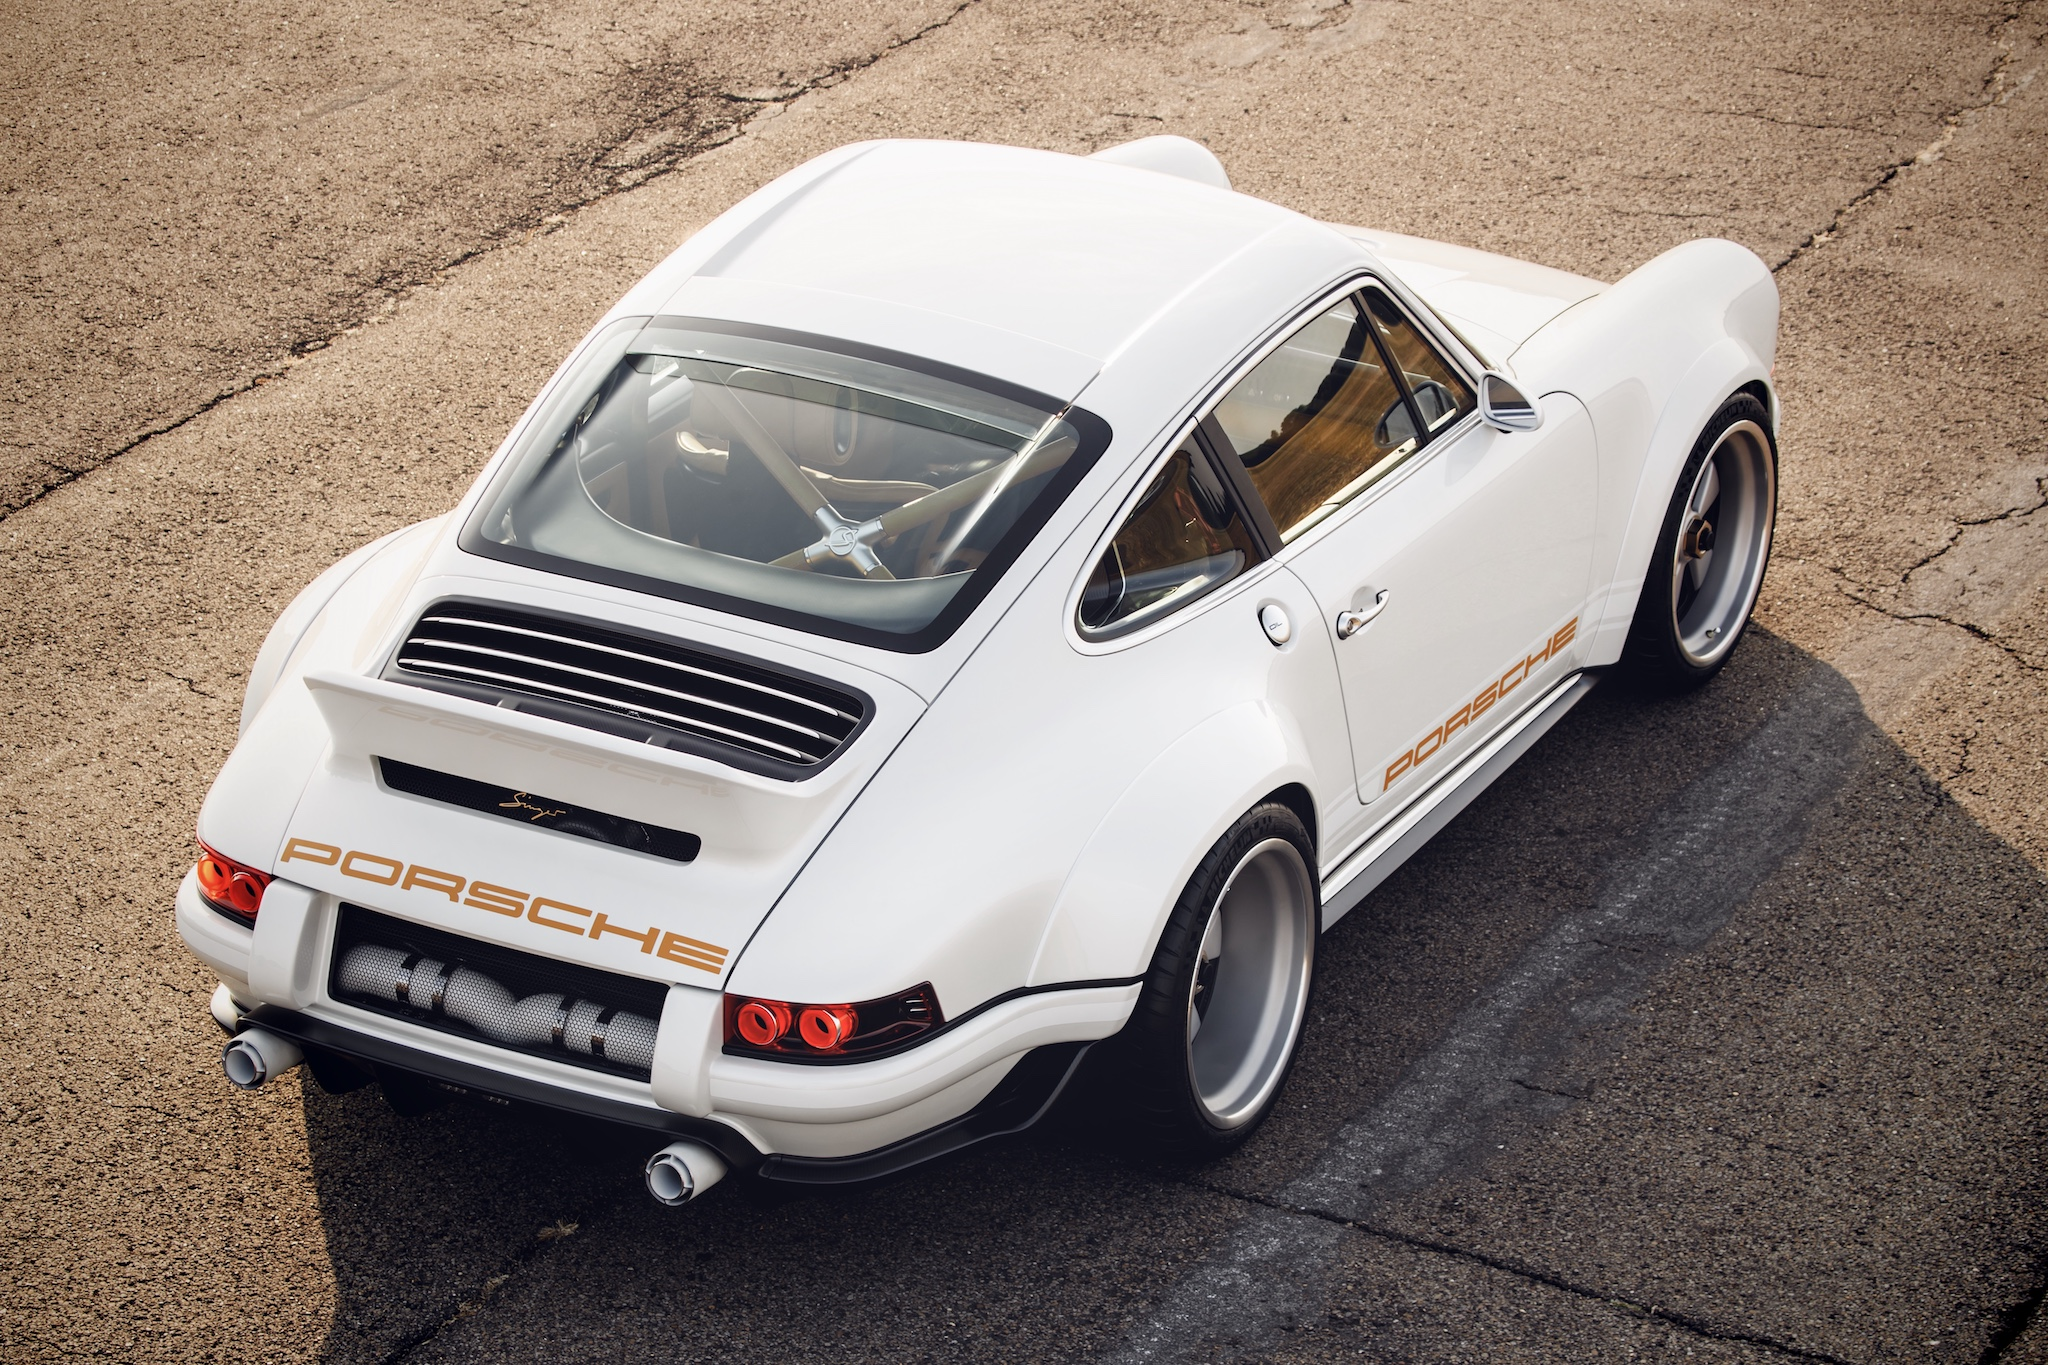 """a1845e7b57a Working on this Singer 911 restoration """"turns"""" Williams F1 engineers ..."""